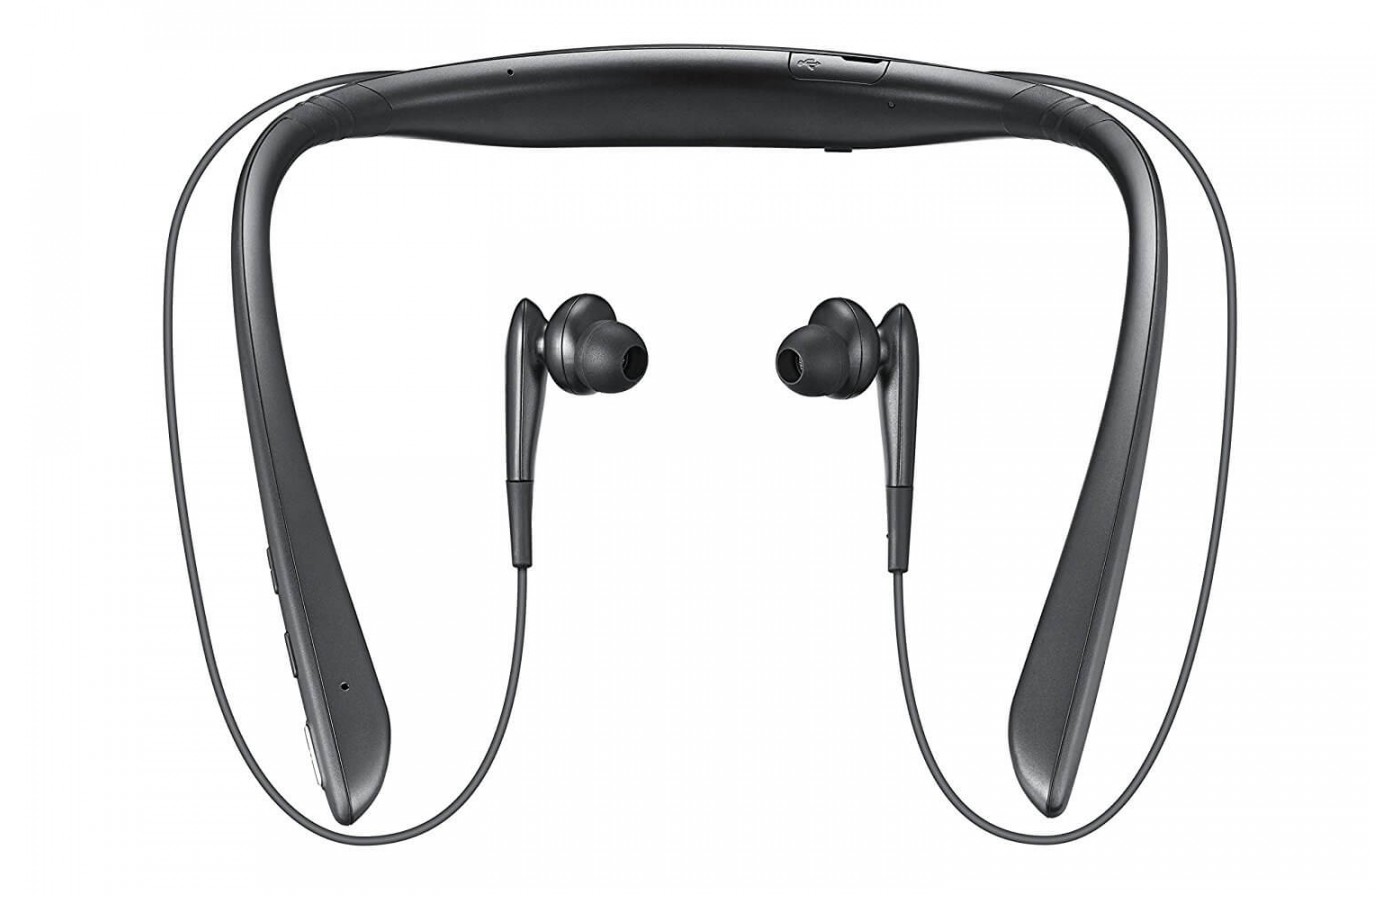 The Samsung Level U Pro headphones are capable of answering calls